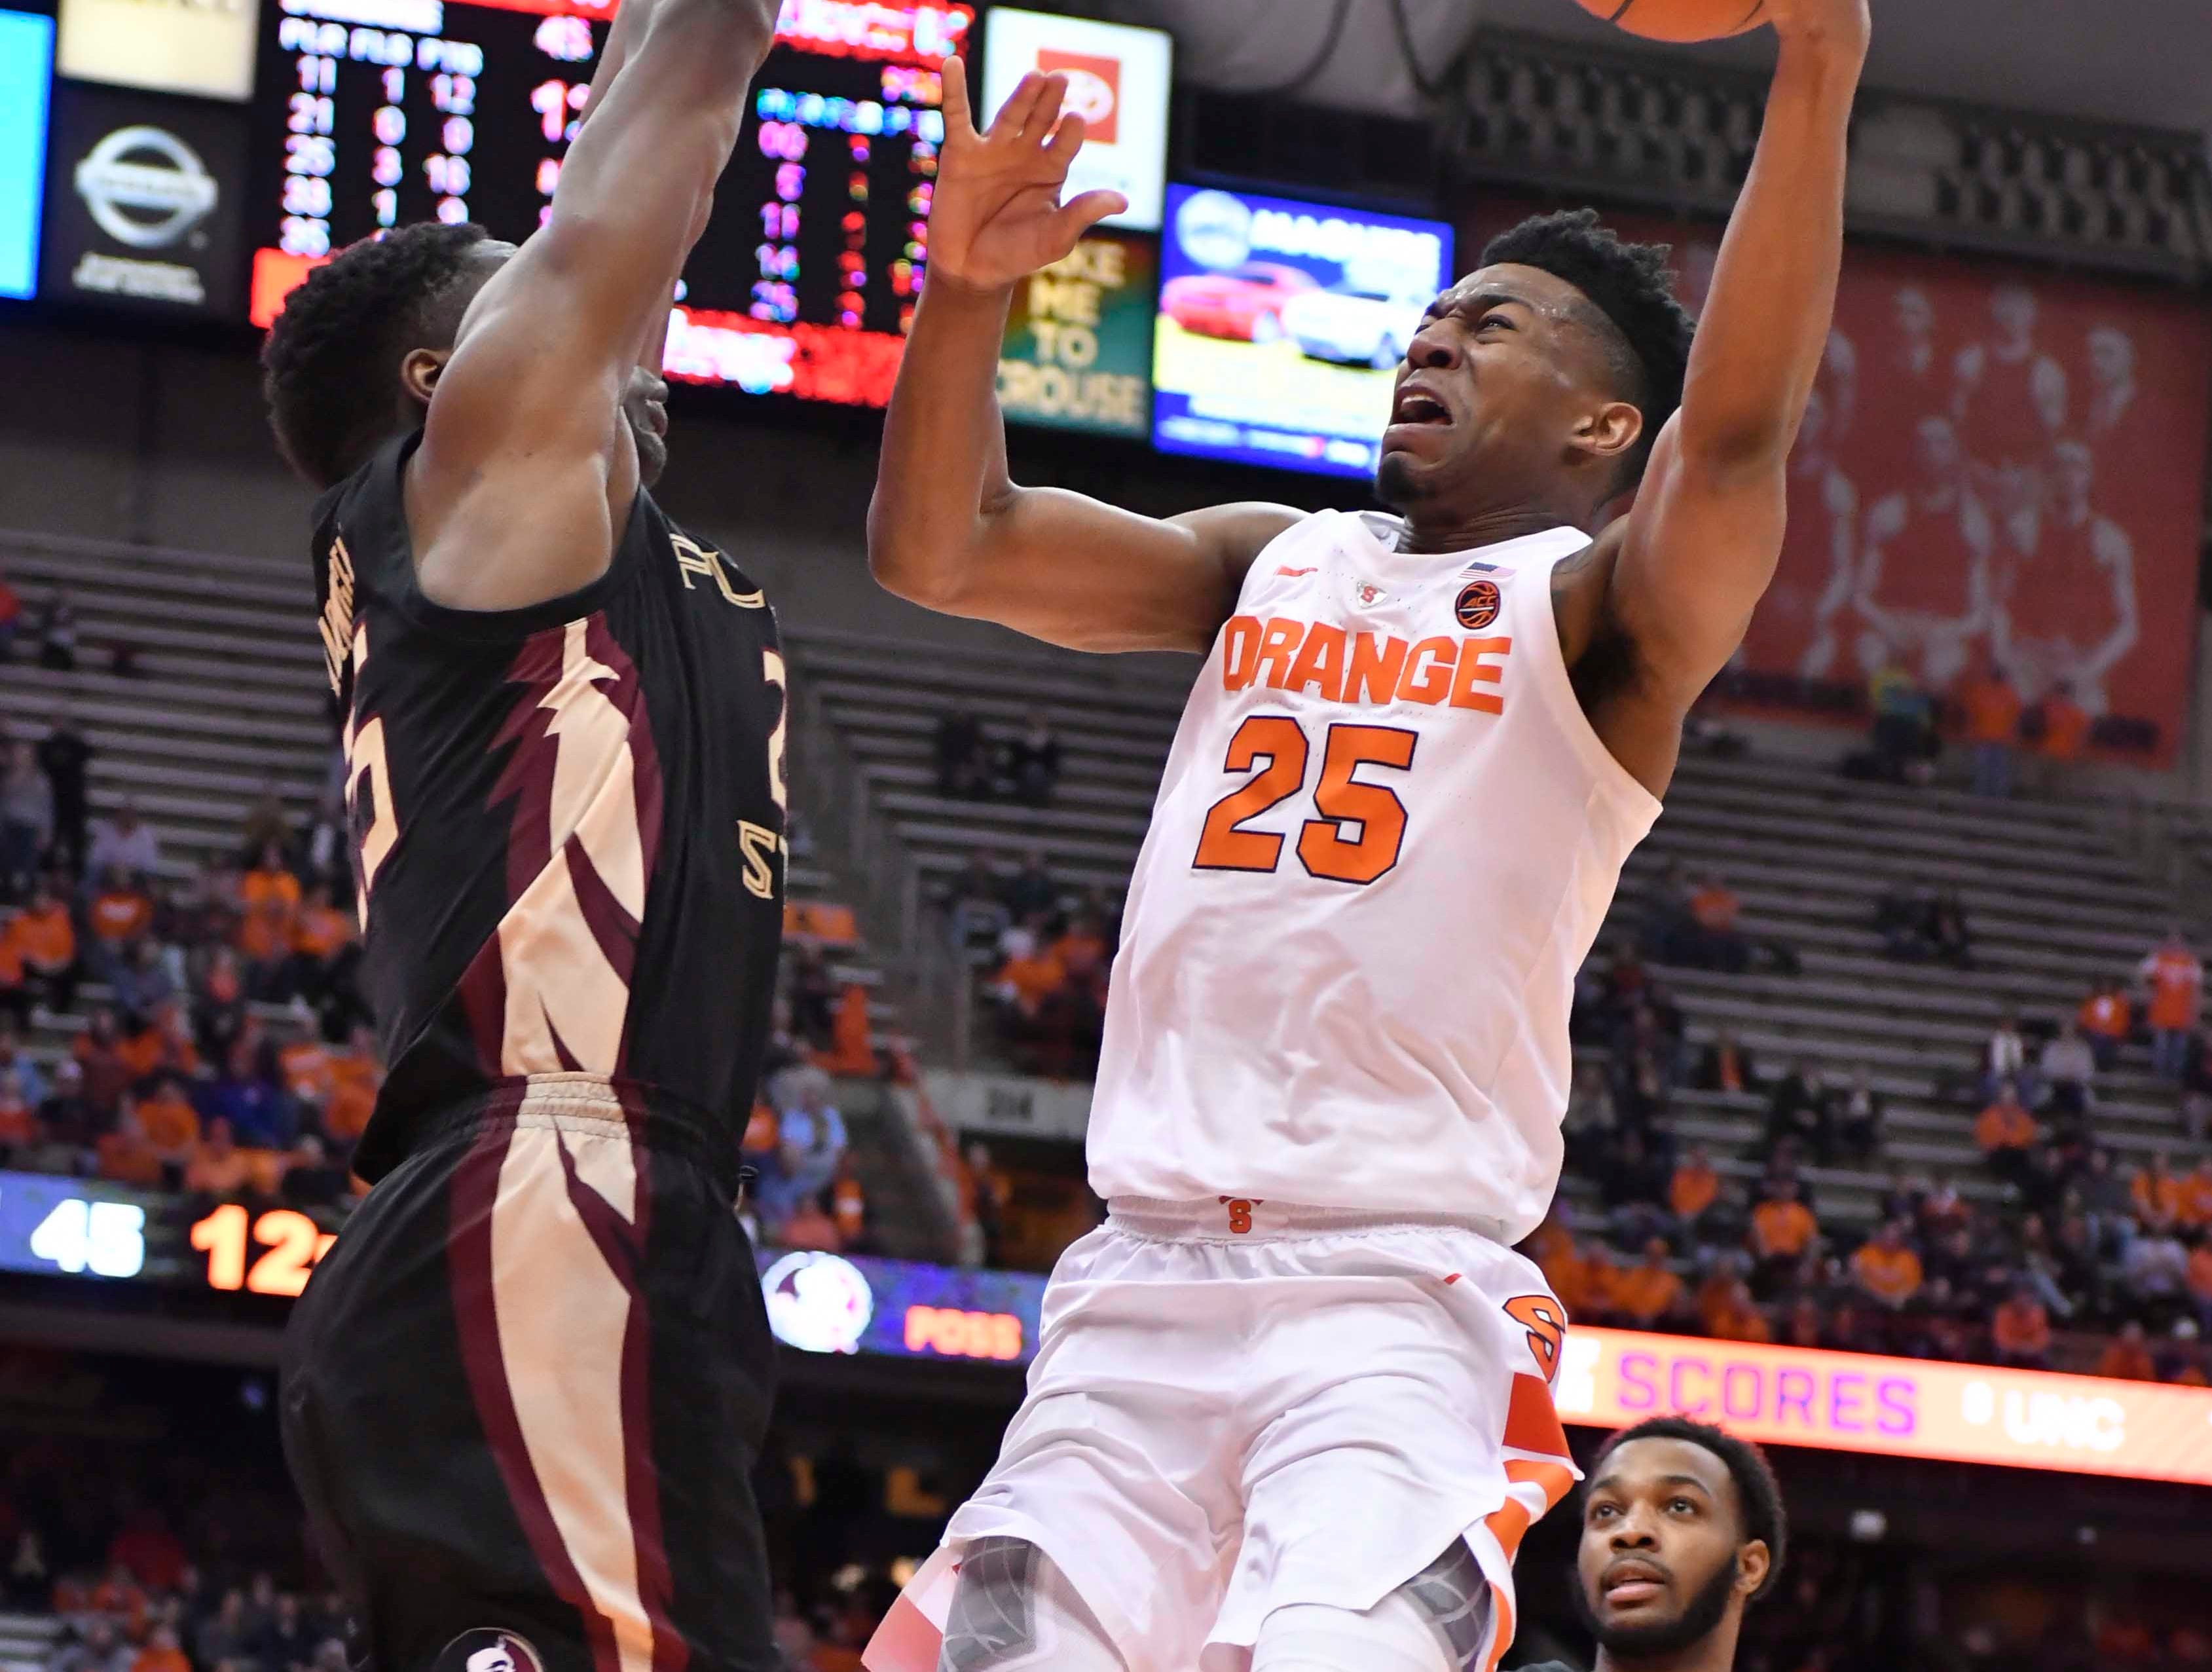 Feb 5, 2019; Syracuse, NY, USA; Syracuse Orange guard Tyus Battle (25) shoots the ball as Florida State Seminoles forward Mfiondu Kabengele applies pressure in the second half at the Carrier Dome. Mandatory Credit: Mark Konezny-USA TODAY Sports